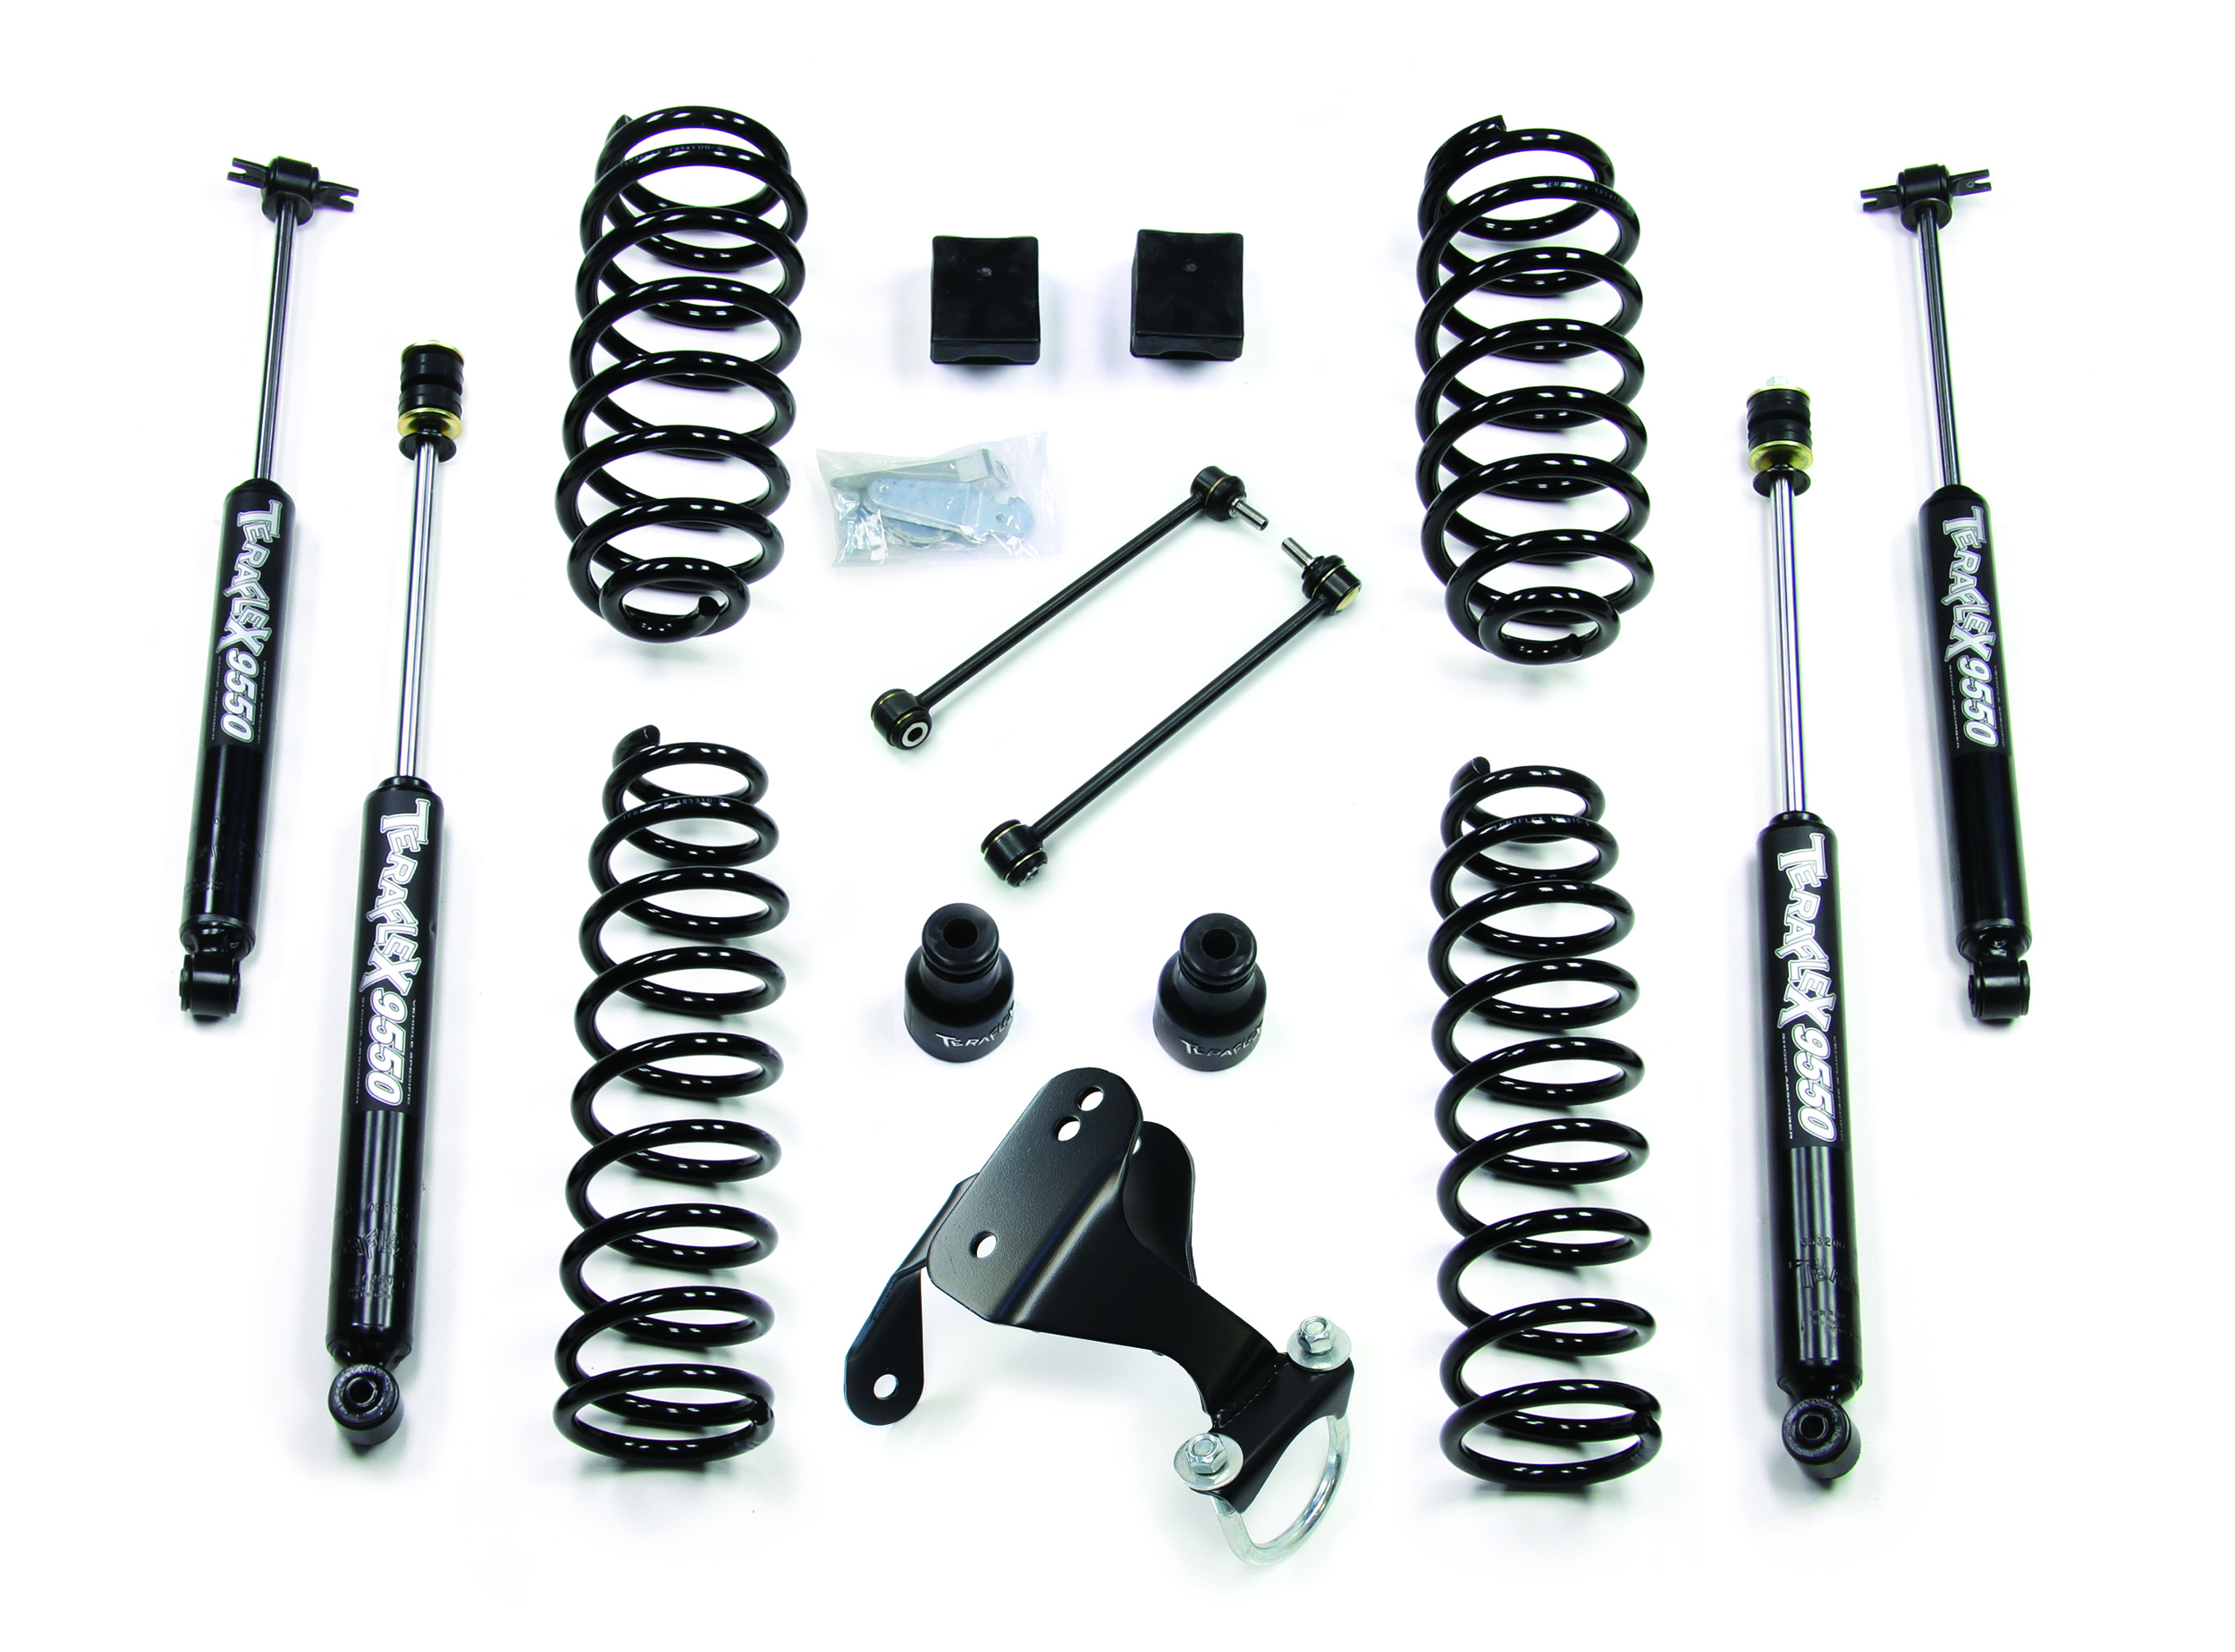 Teraflex Jk 4 Door 2 5 Lift Kit W Shocks